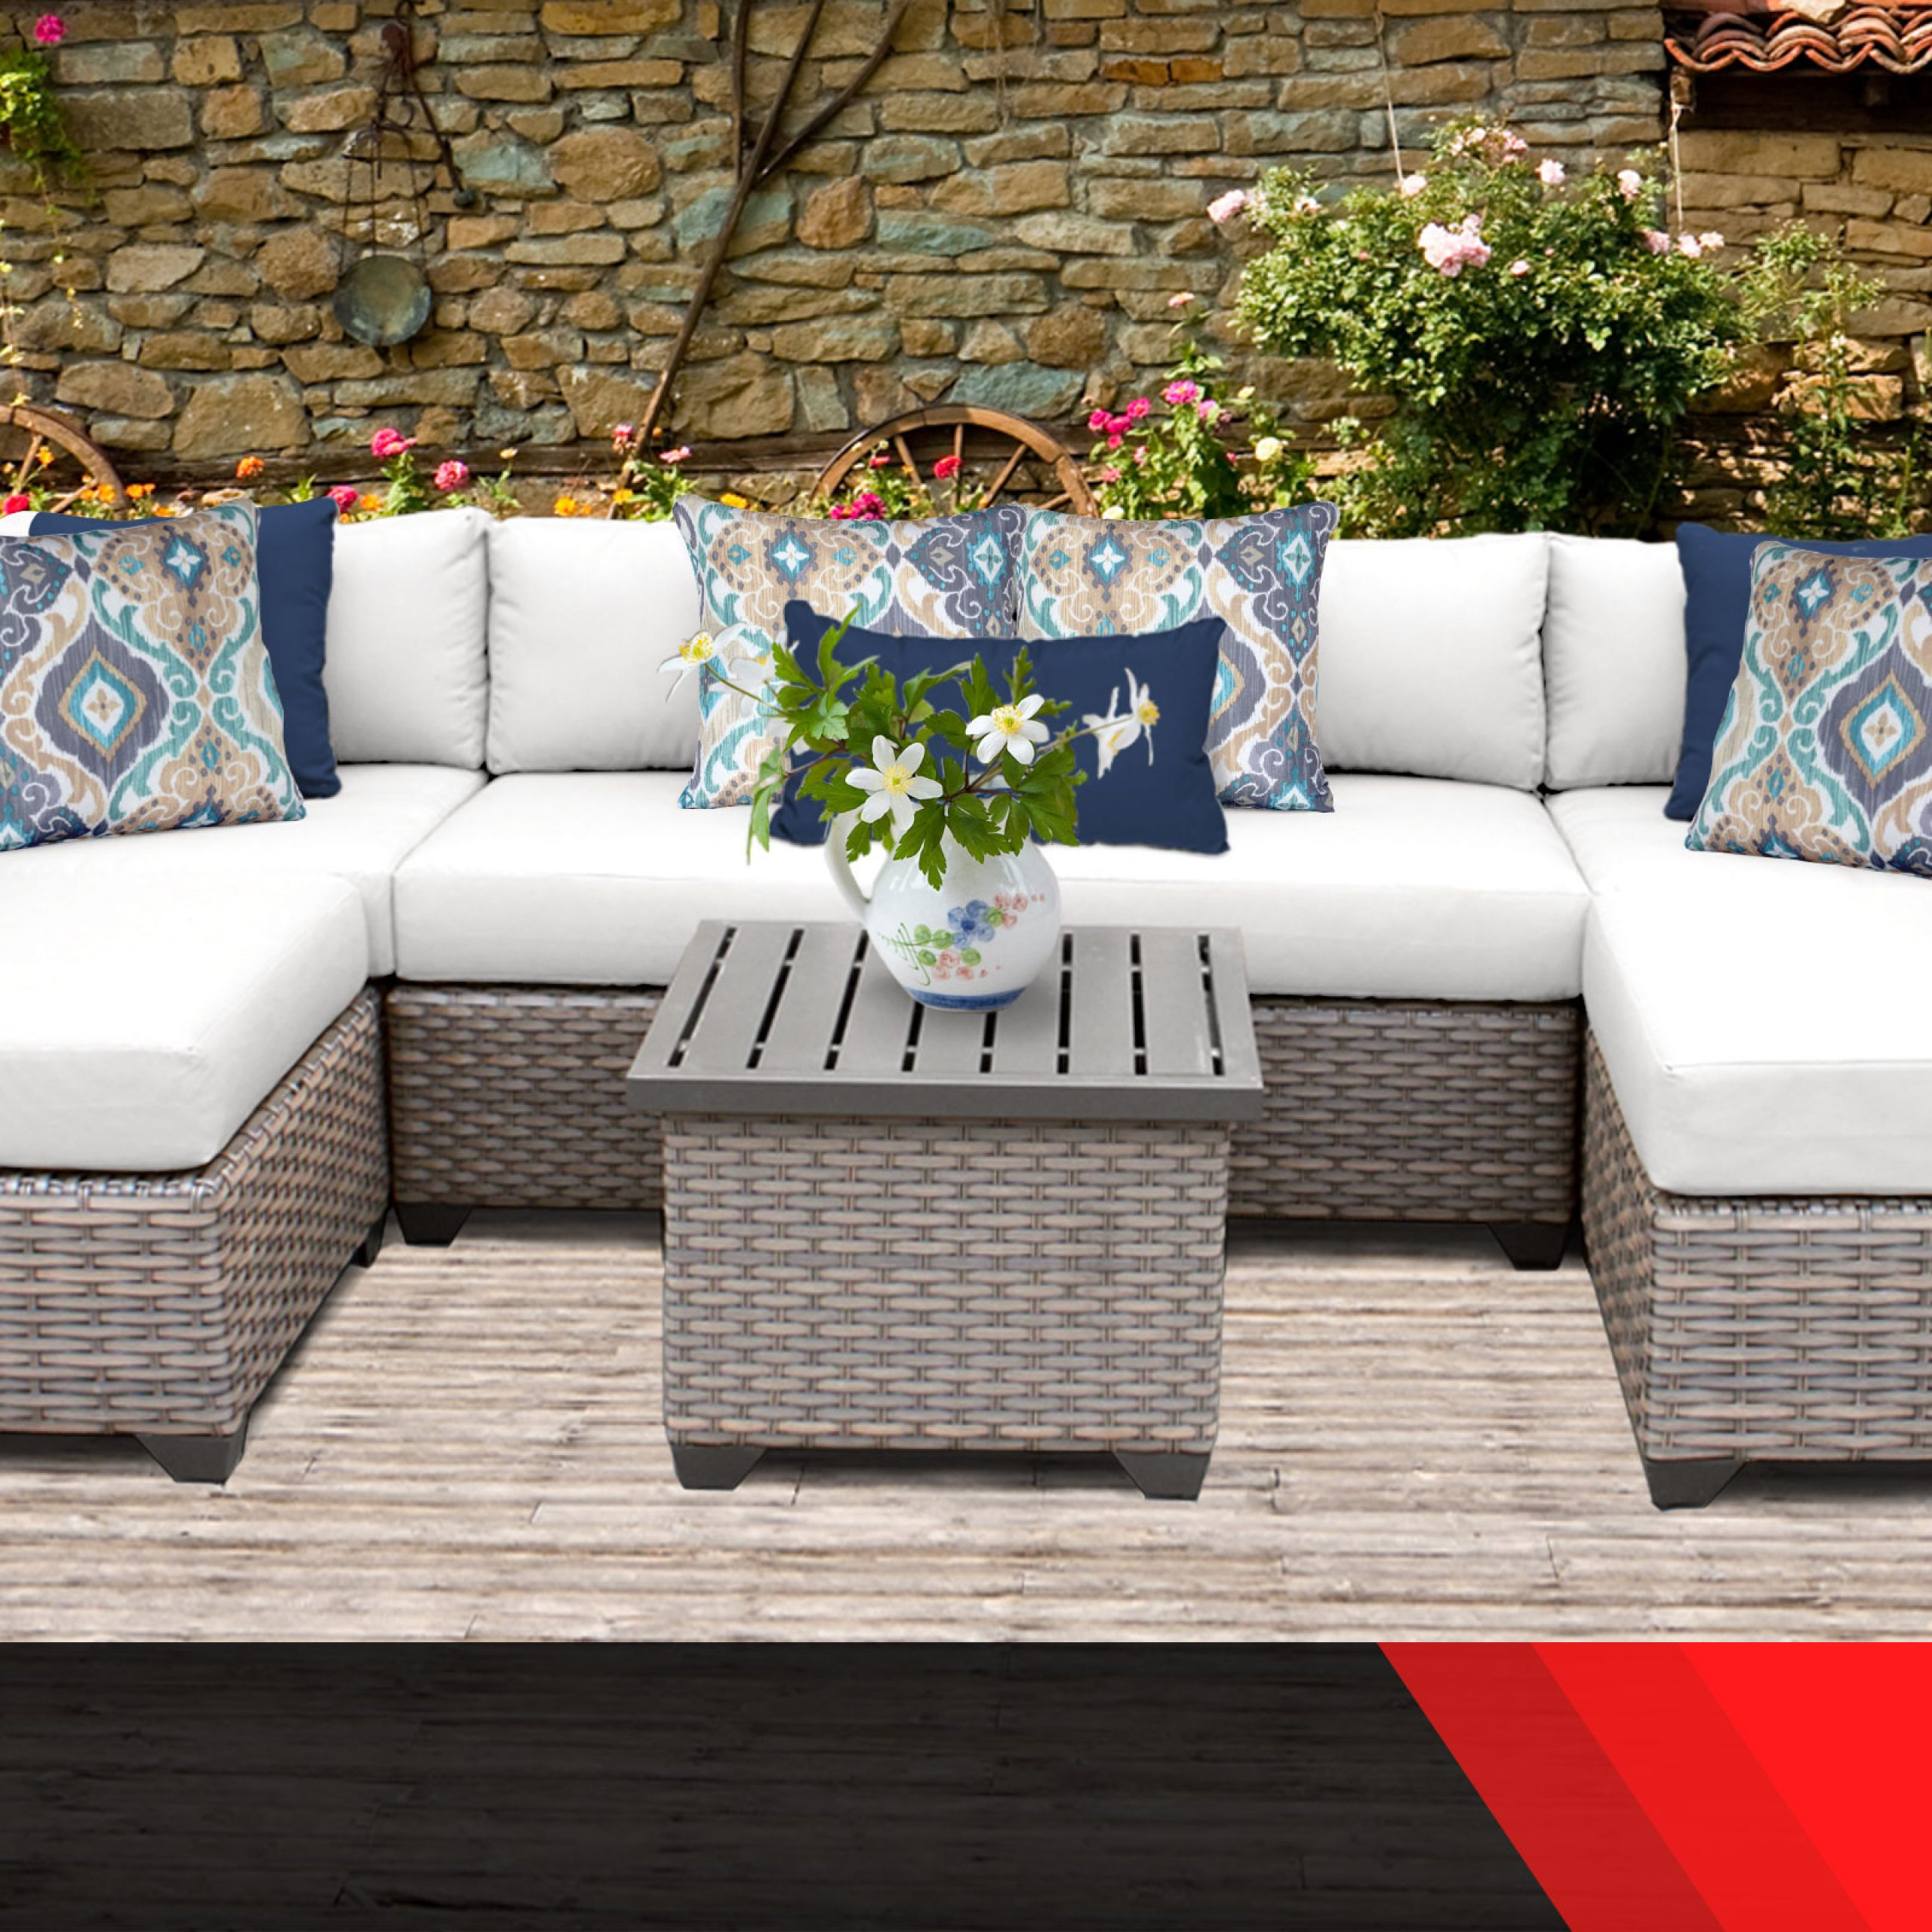 Popular Catalina Outdoor Sofas With Cushions For Details About Catalina 7 Piece Outdoor Wicker Patio Furniture Set 07c 2 For (View 8 of 11)